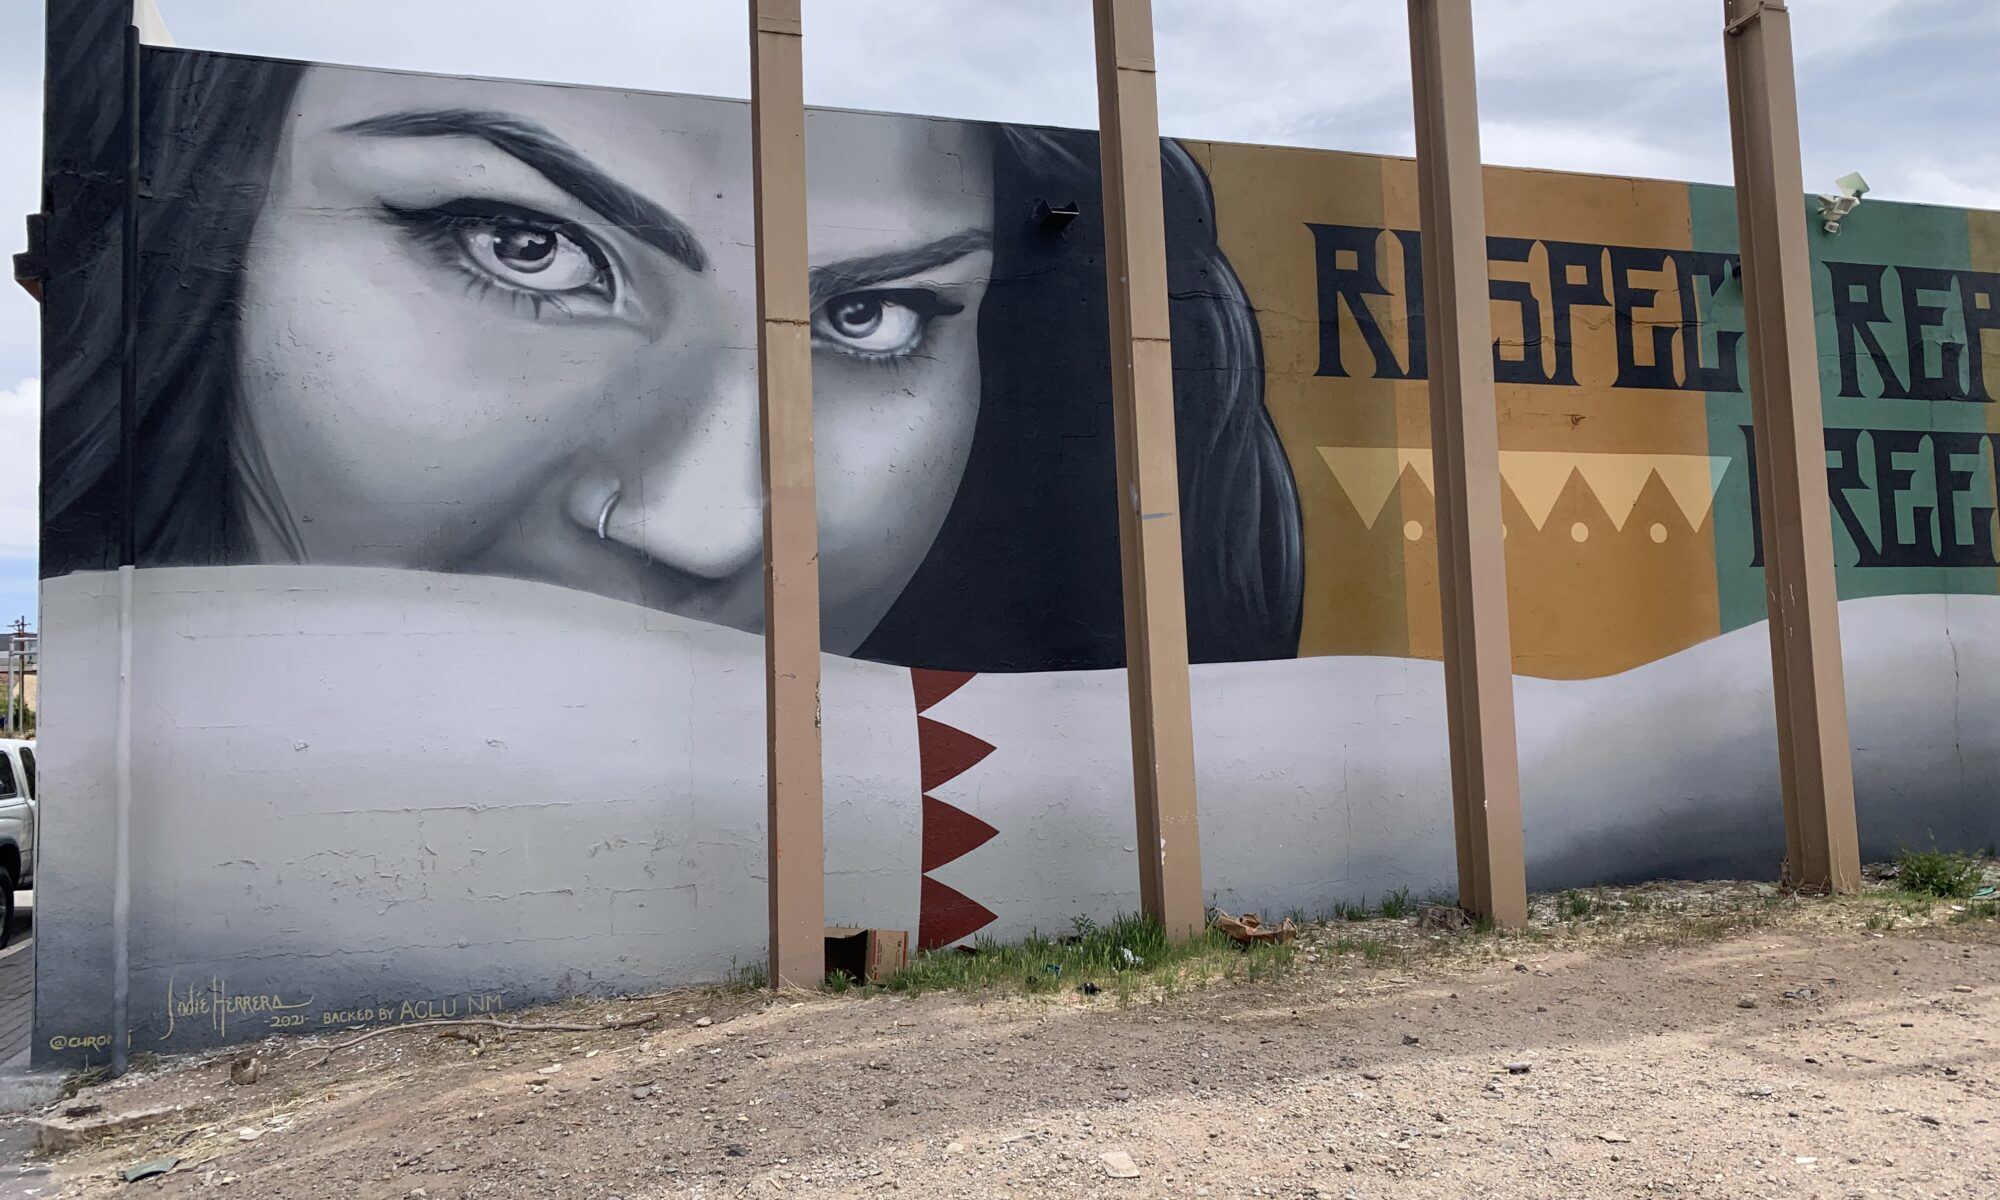 large face of woman with mural title